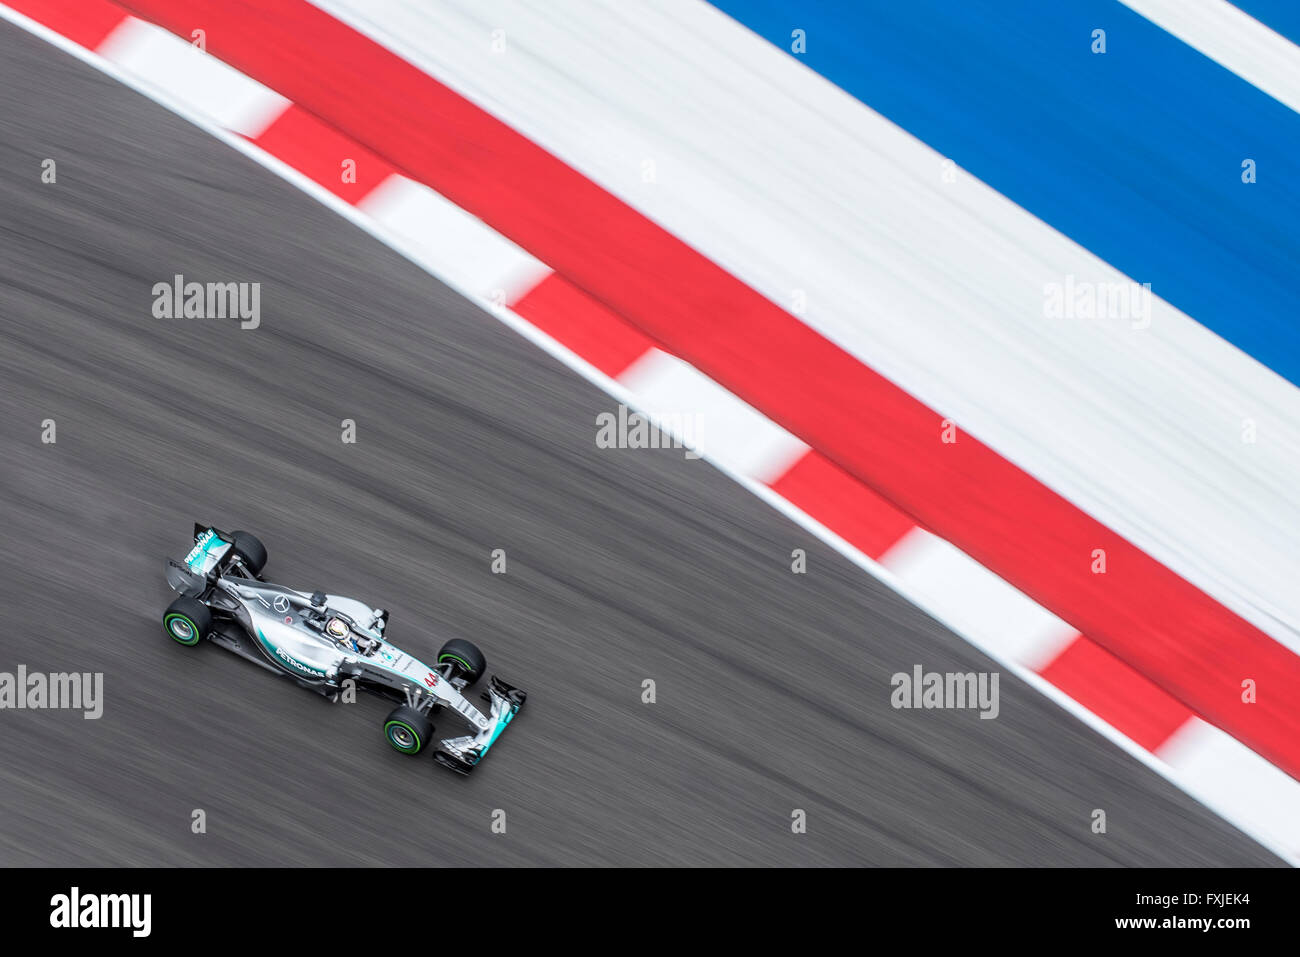 Lewis Hamilton of Mercedes AMG Petronas seen from above during FP1 before the 2015 US Grand Prix at Circuit of the Stock Photo